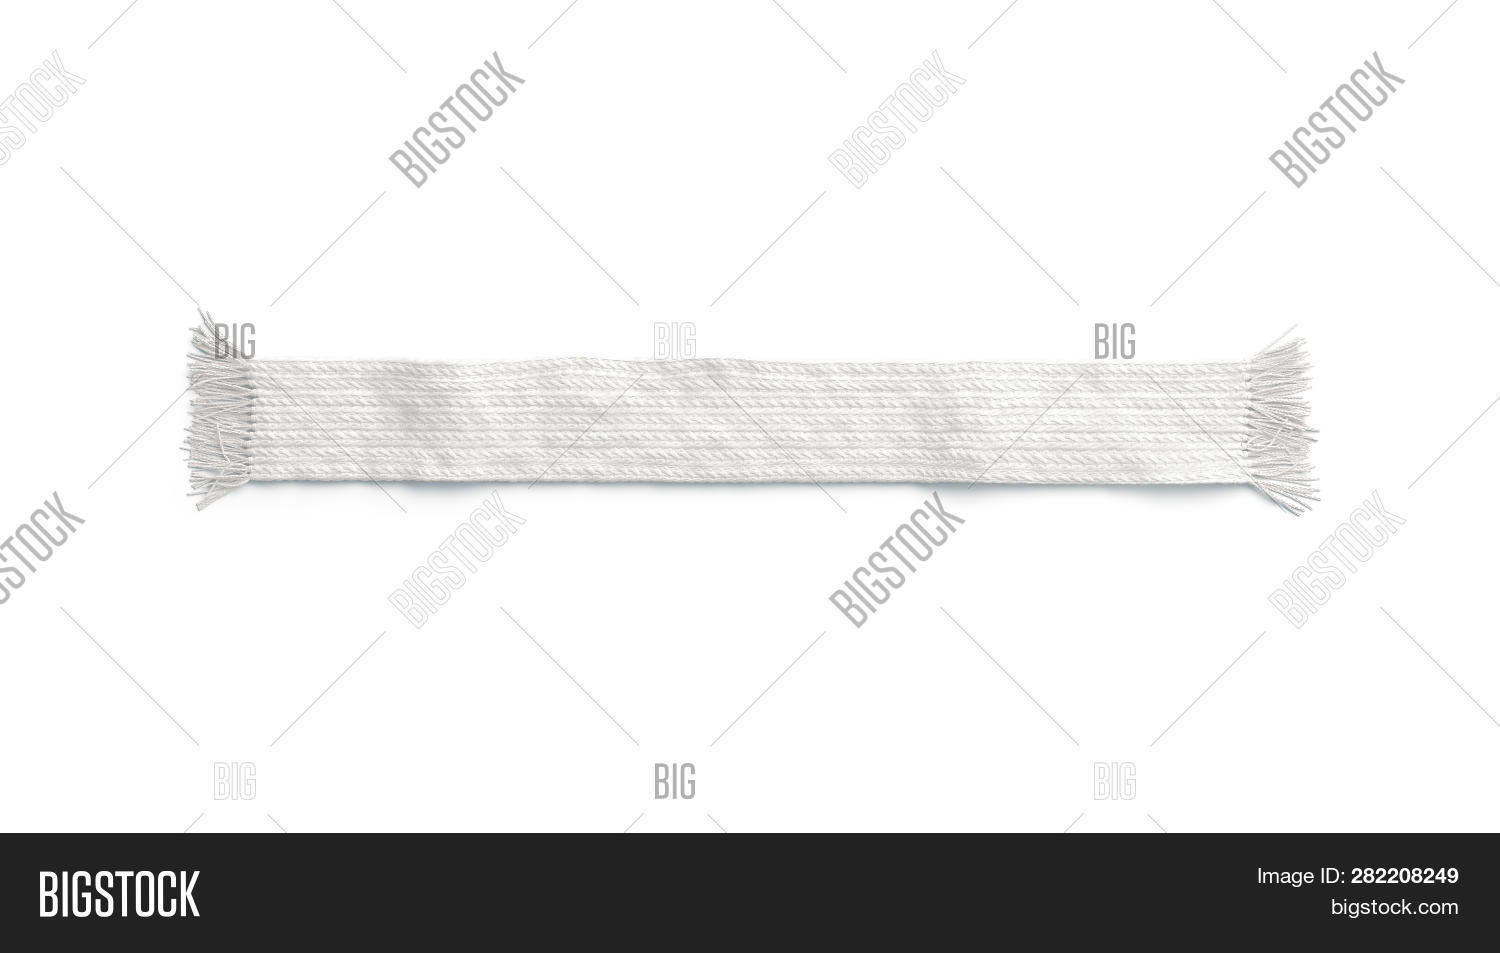 Blank White Wool Image & Photo (Free Trial) | Bigstock